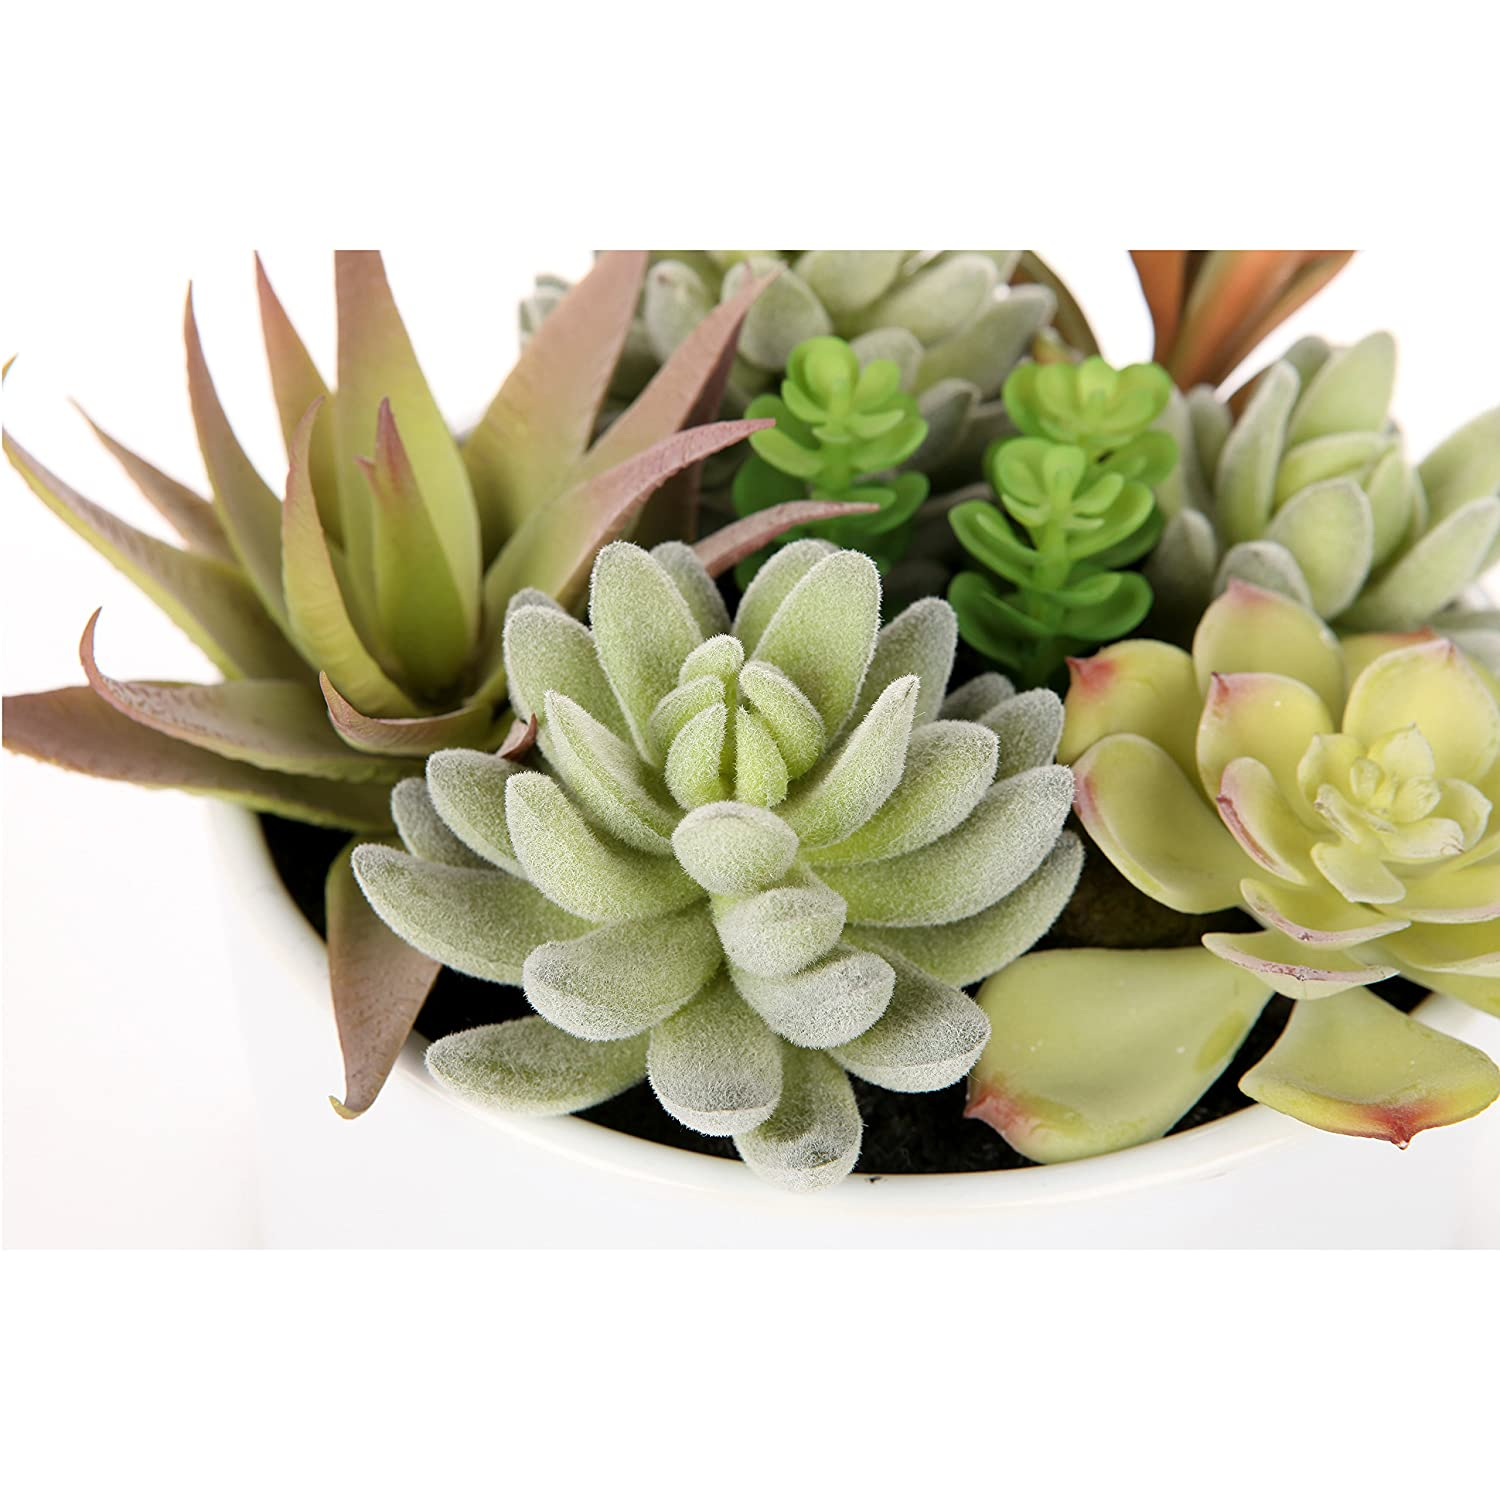 MyGift Decorative Round Faux Potted Succulents//Artificial Plant in 6 Inch Glazed White Ceramic Flower Pot